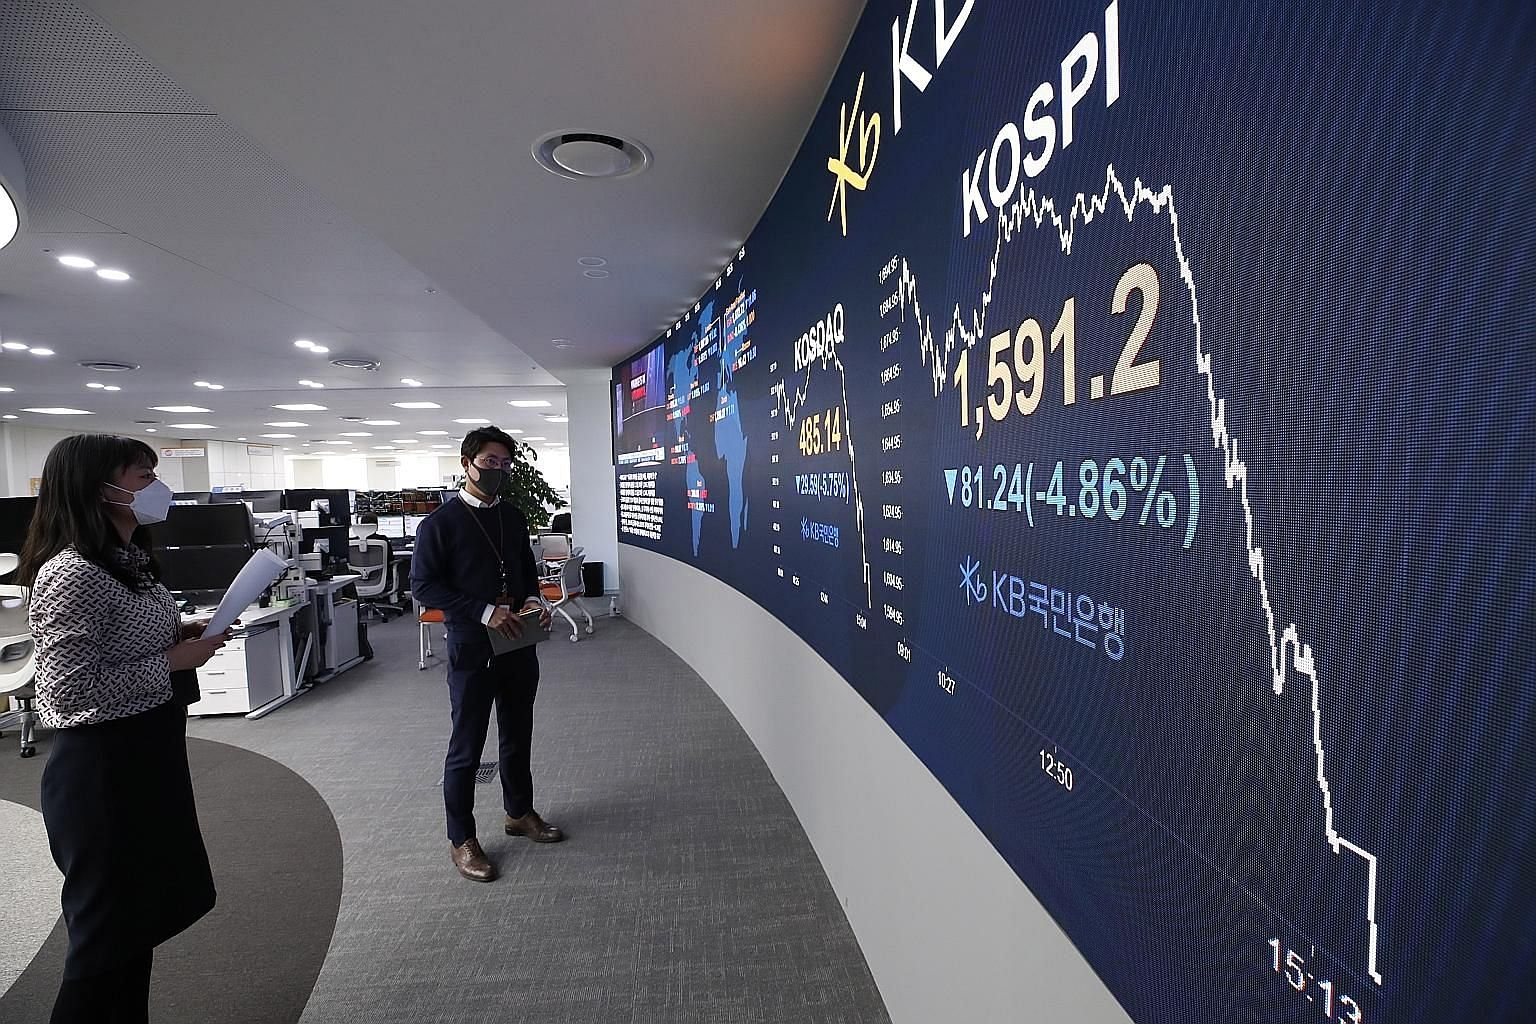 Dealers at KB Kookmin Bank, where an electronic signboard showed the benchmark Korea Composite Stock Price Index dropping for the sixth consecutive session on Wednesday. South Korea has warned of a global credit crunch and said it was setting up cris